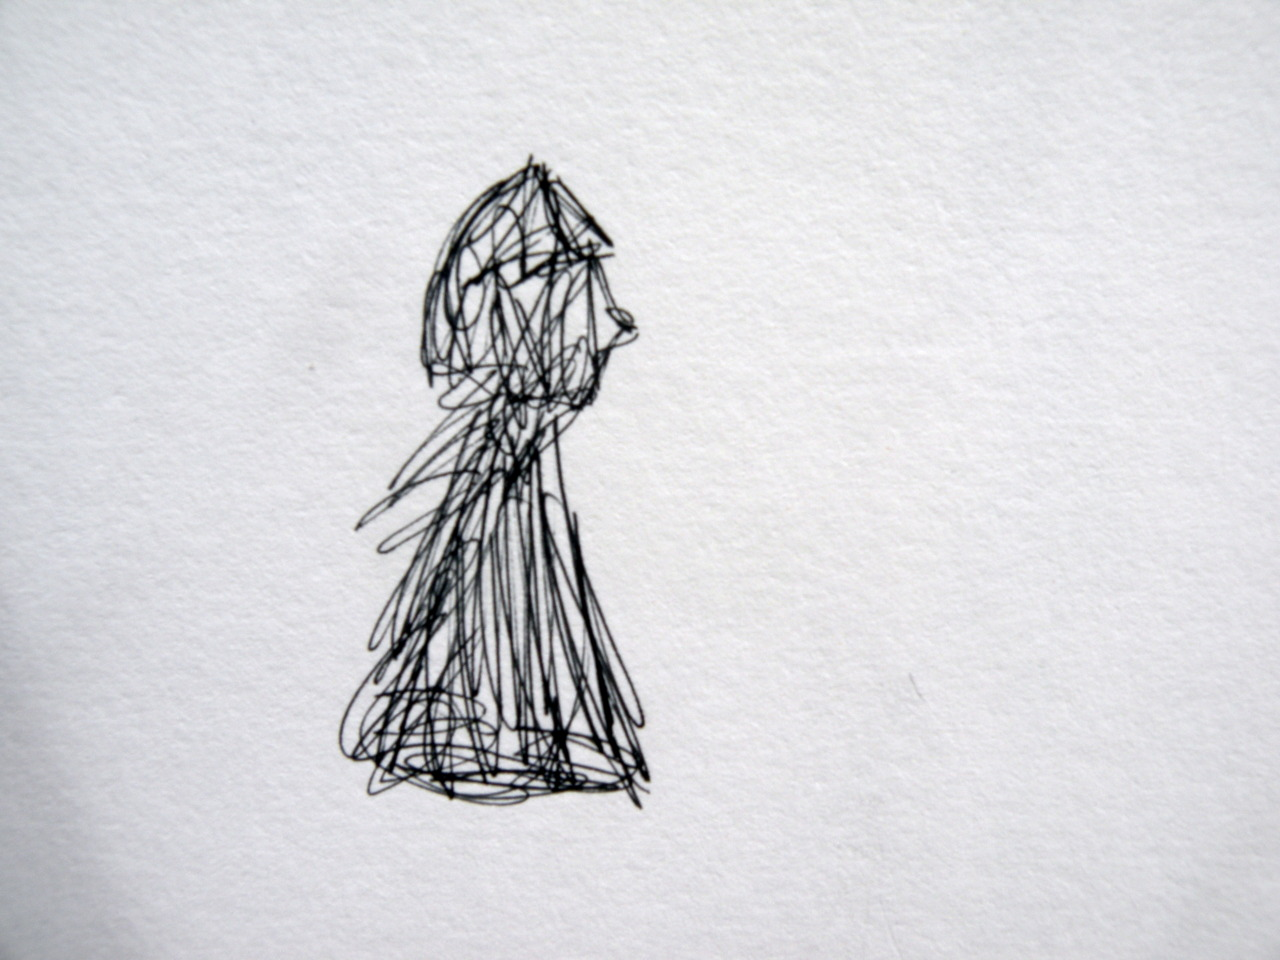 scribble profile of a girl